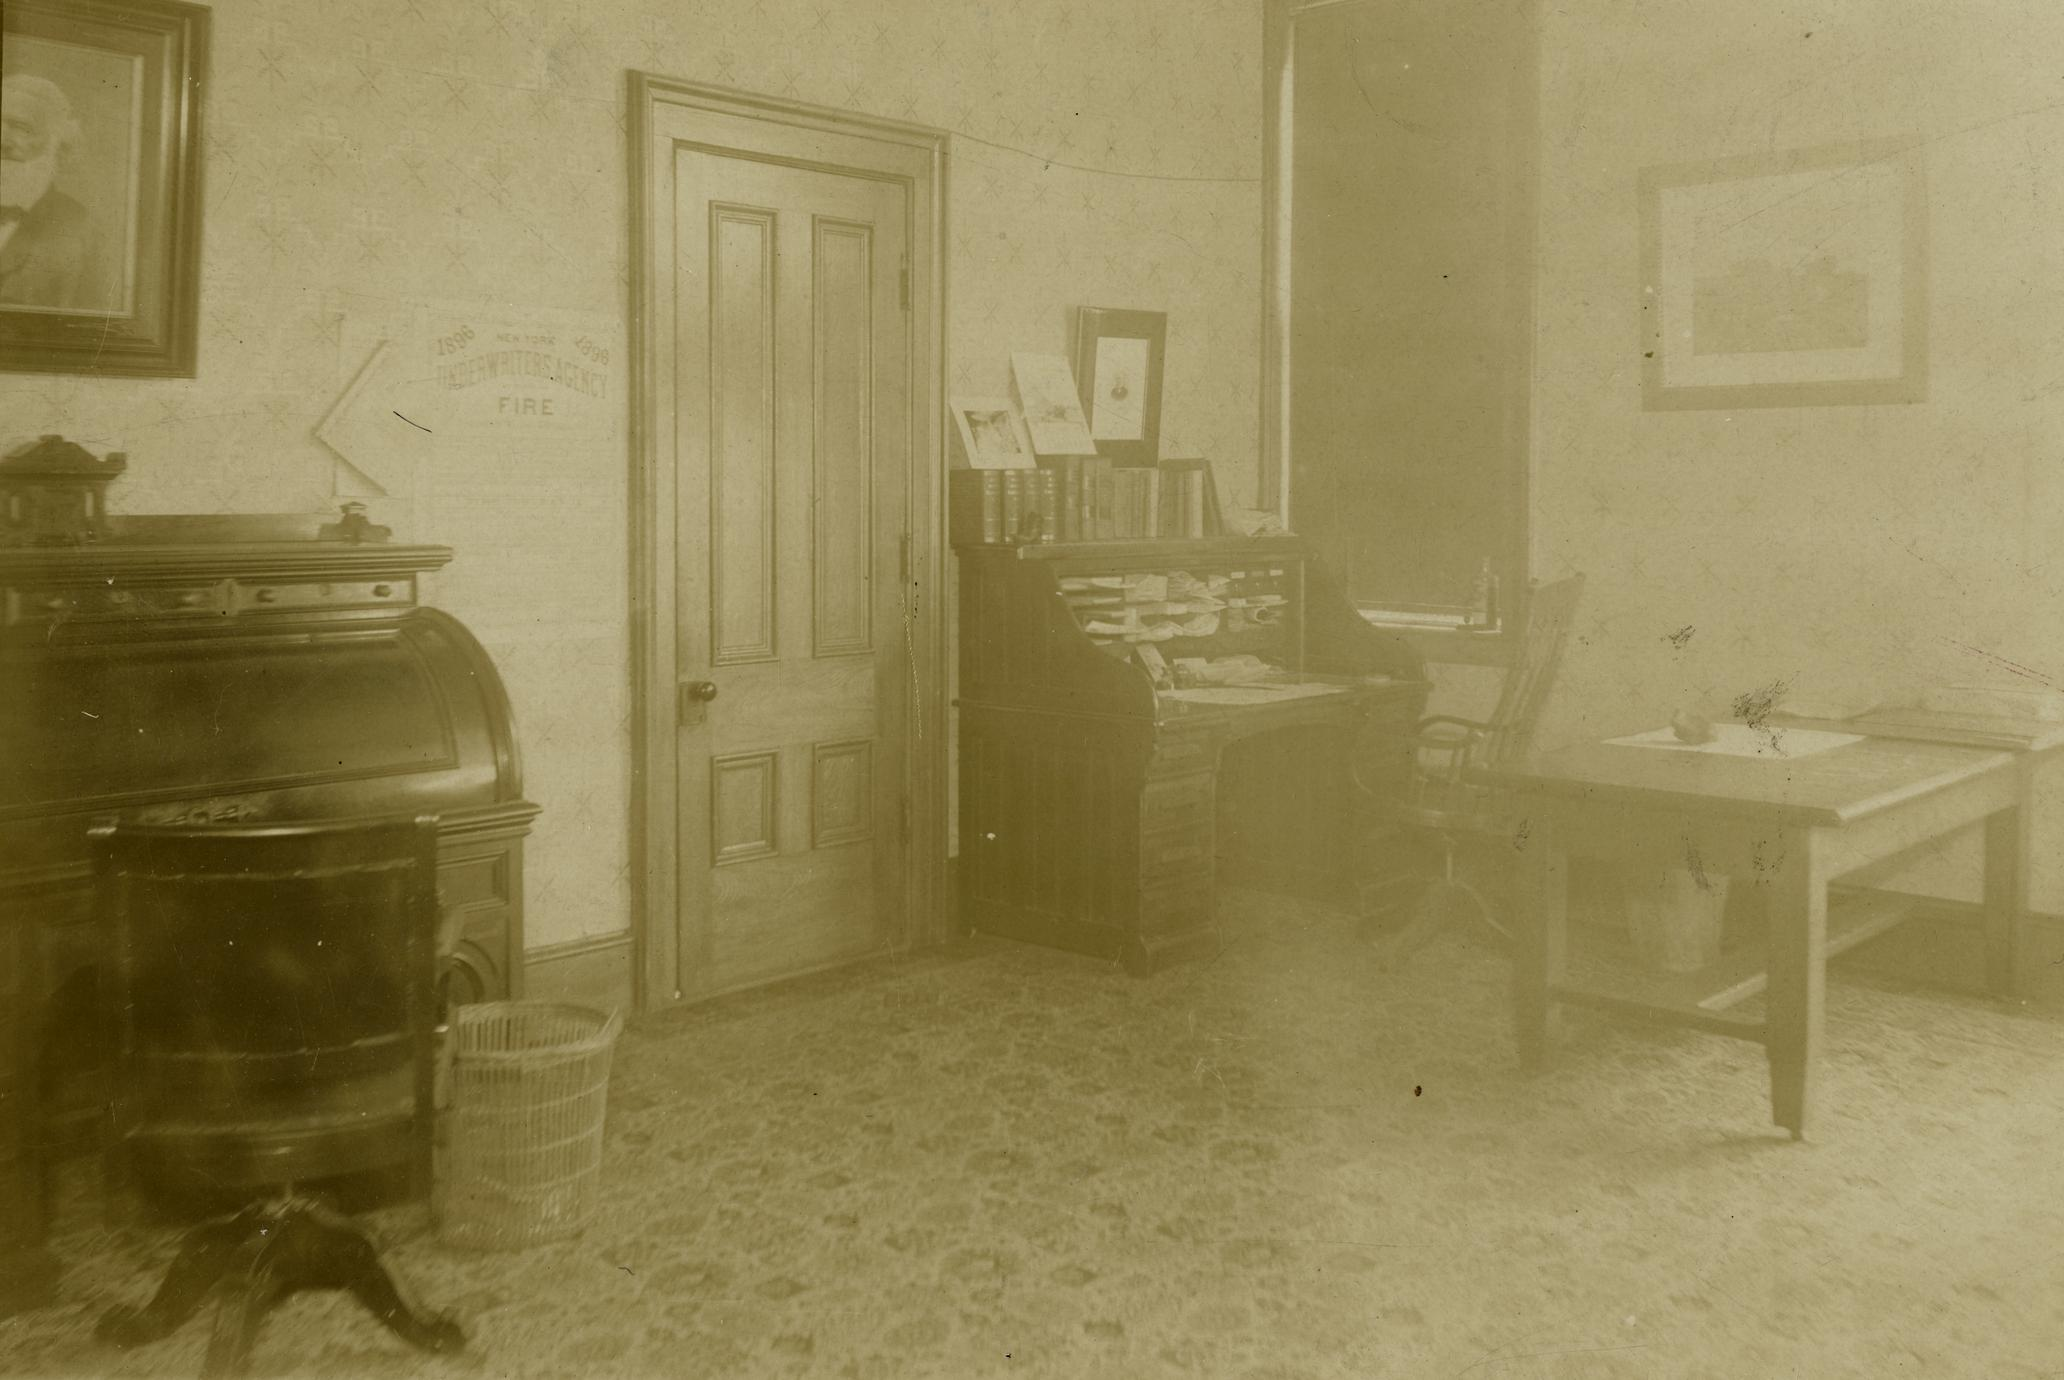 Zalmon G. Simmons' first office